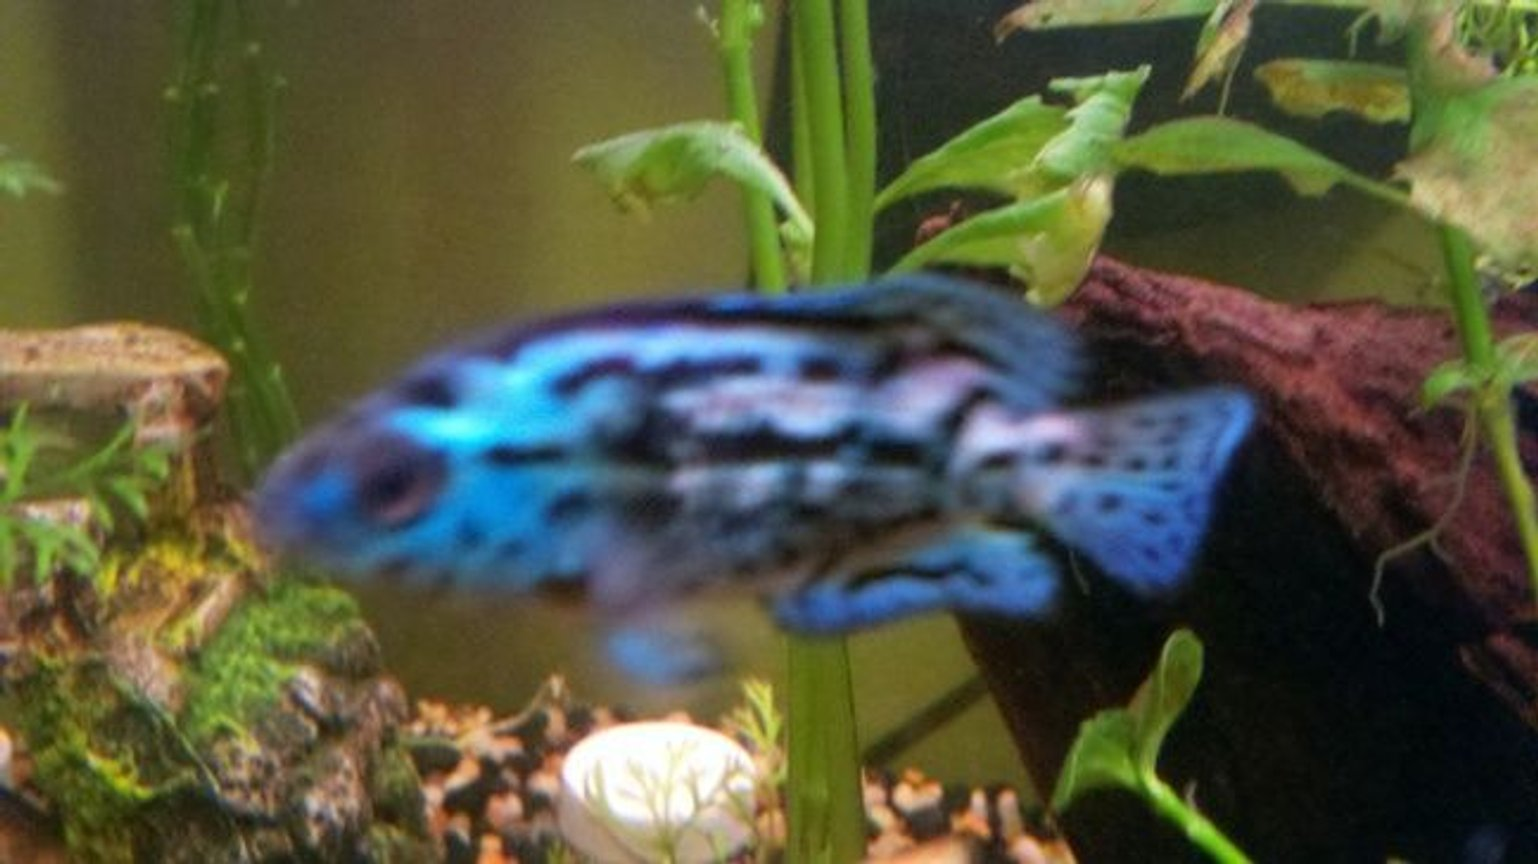 freshwater fish - nandopsis octofasciatum - electric blue jack dempsey stocking in 39 gallons tank - New Galaxy Blue Jack Dempsey